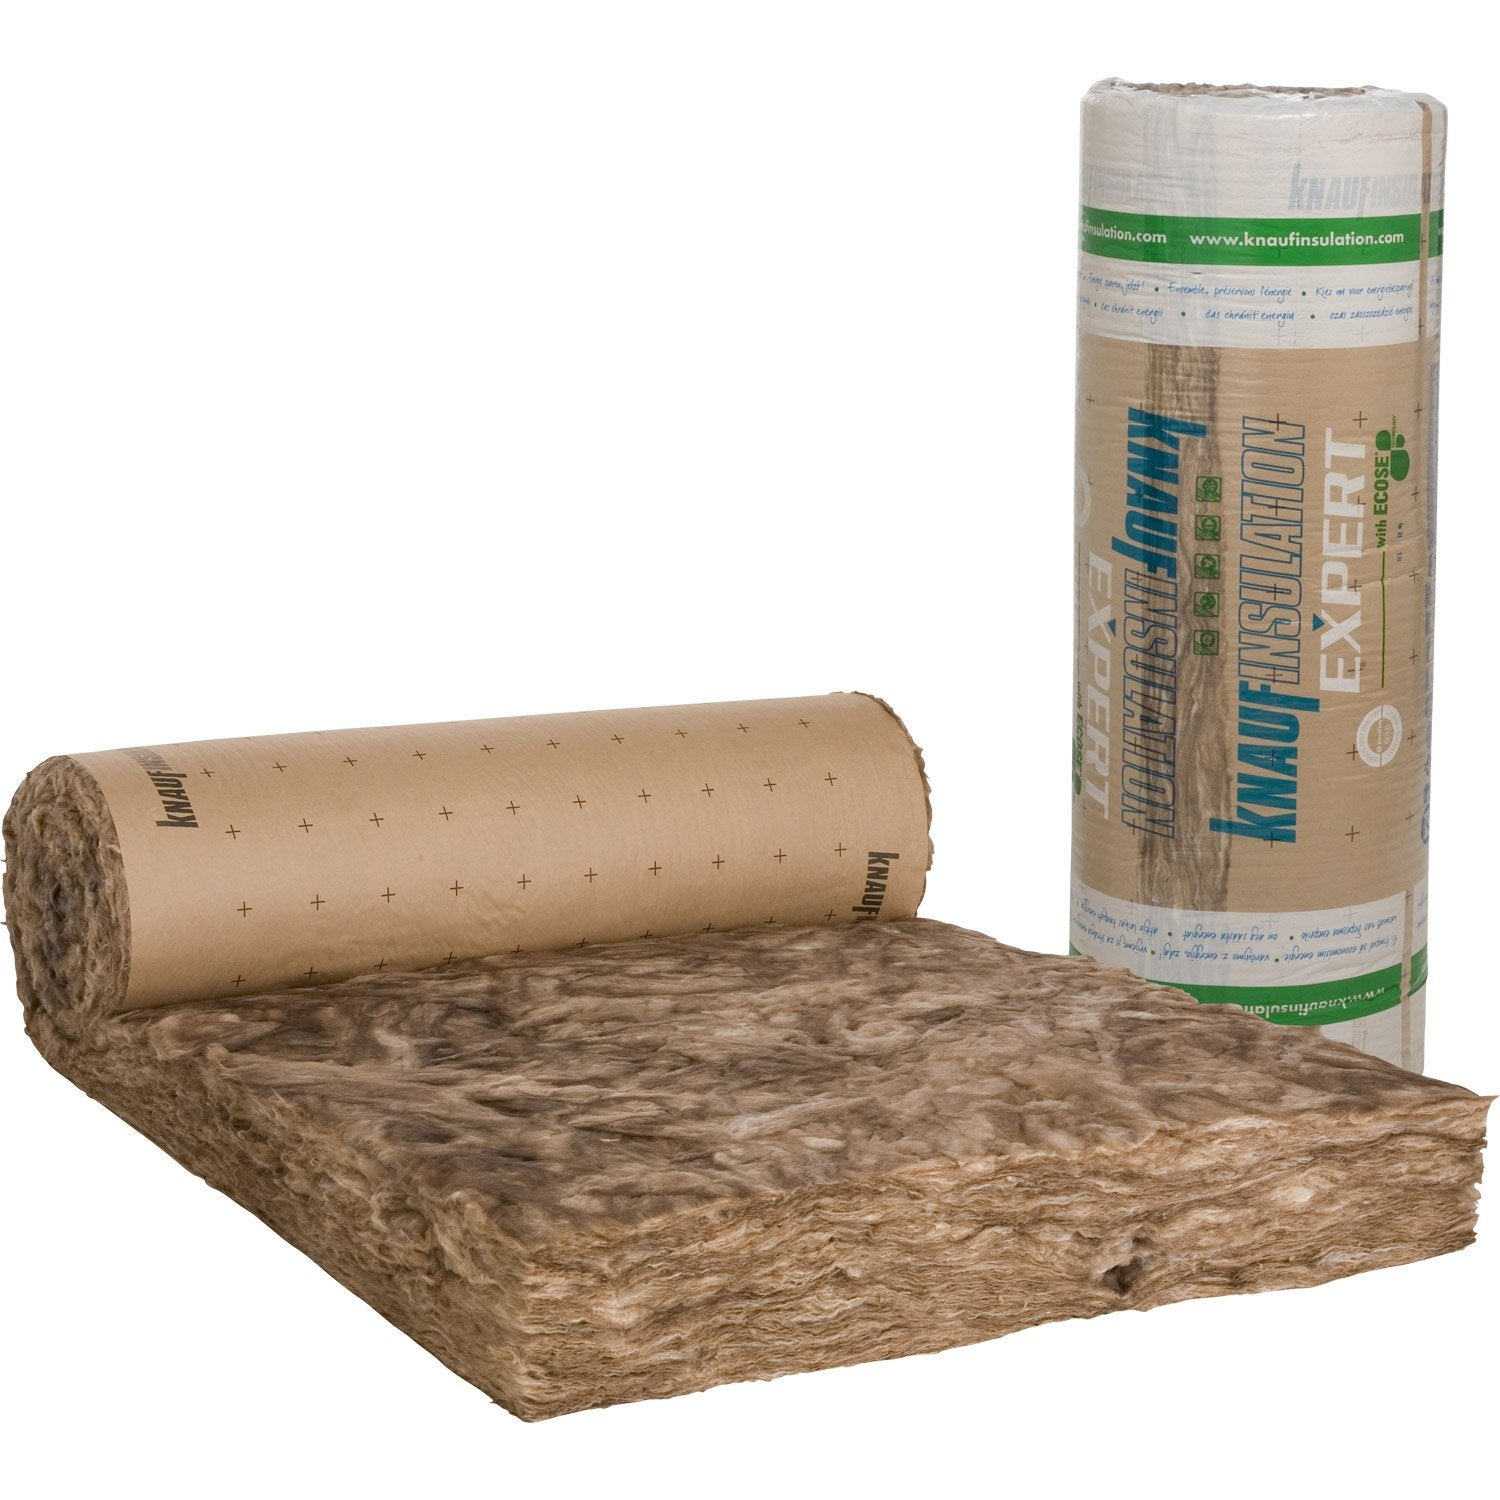 Laine de verre kraft knauf insulation 5 4 x 1 2 m ep 200 mm 040 r 5 leroy merlin - Leroy merlin isolation 1 ...